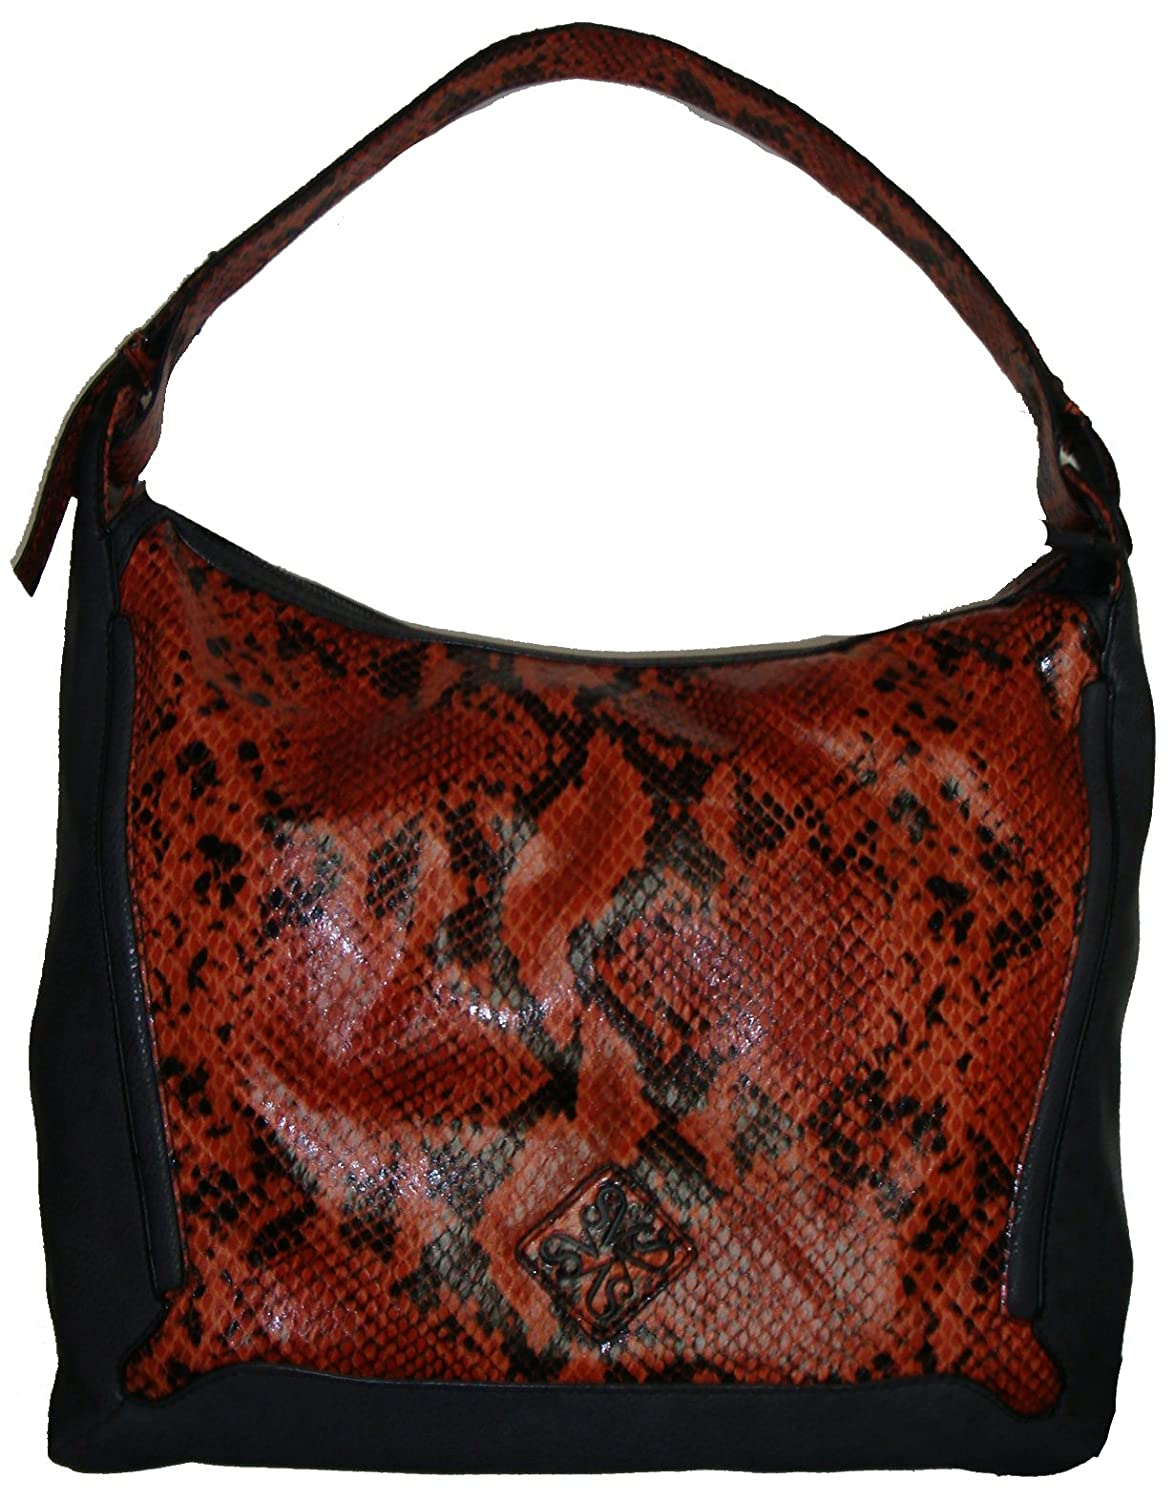 Simply Vera Women's Large Hobo Handbag, Snakeskin Print/Orange